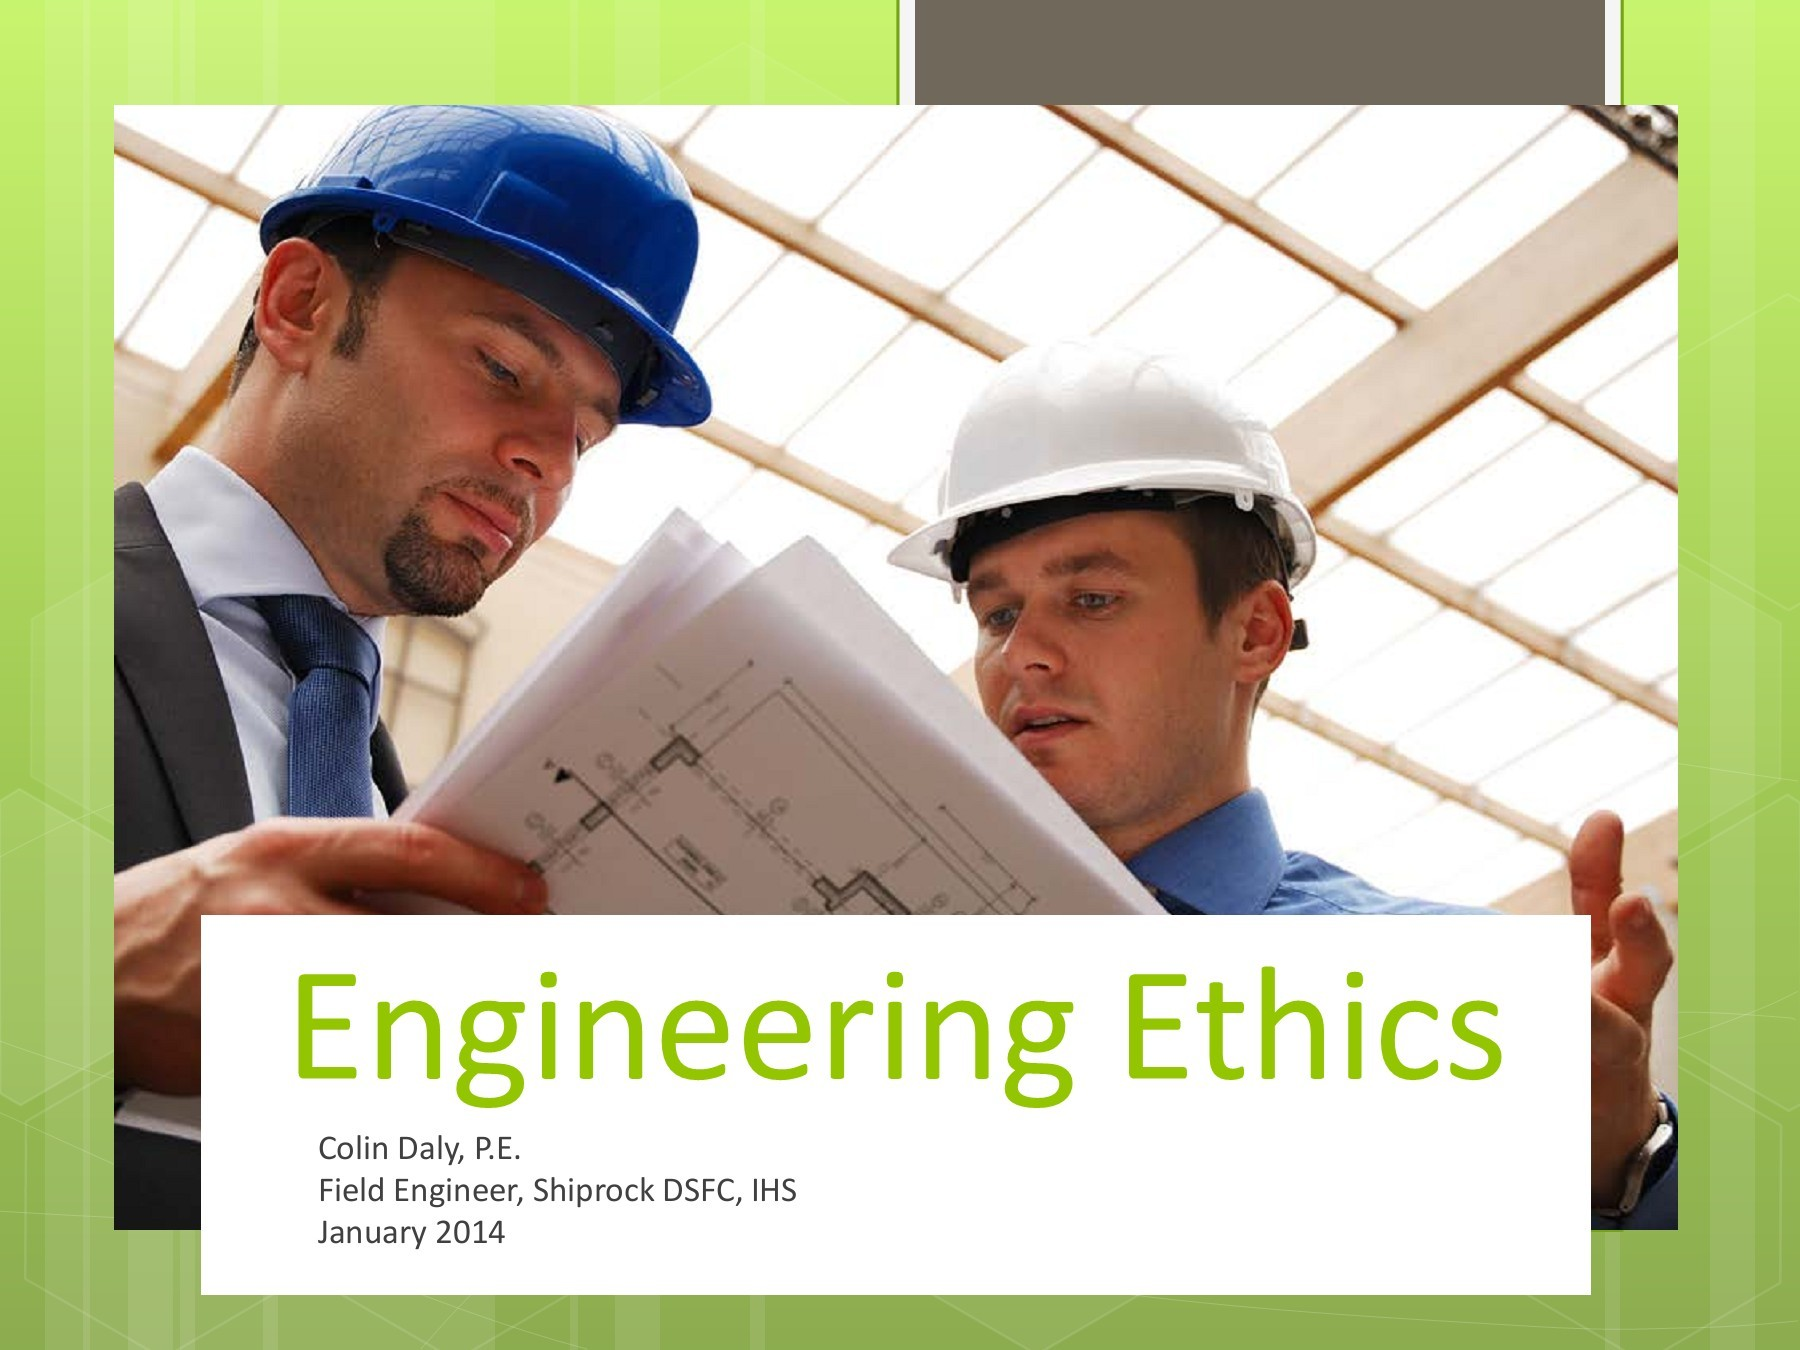 Engineering Ethics - Indian Health Service (Ihs)